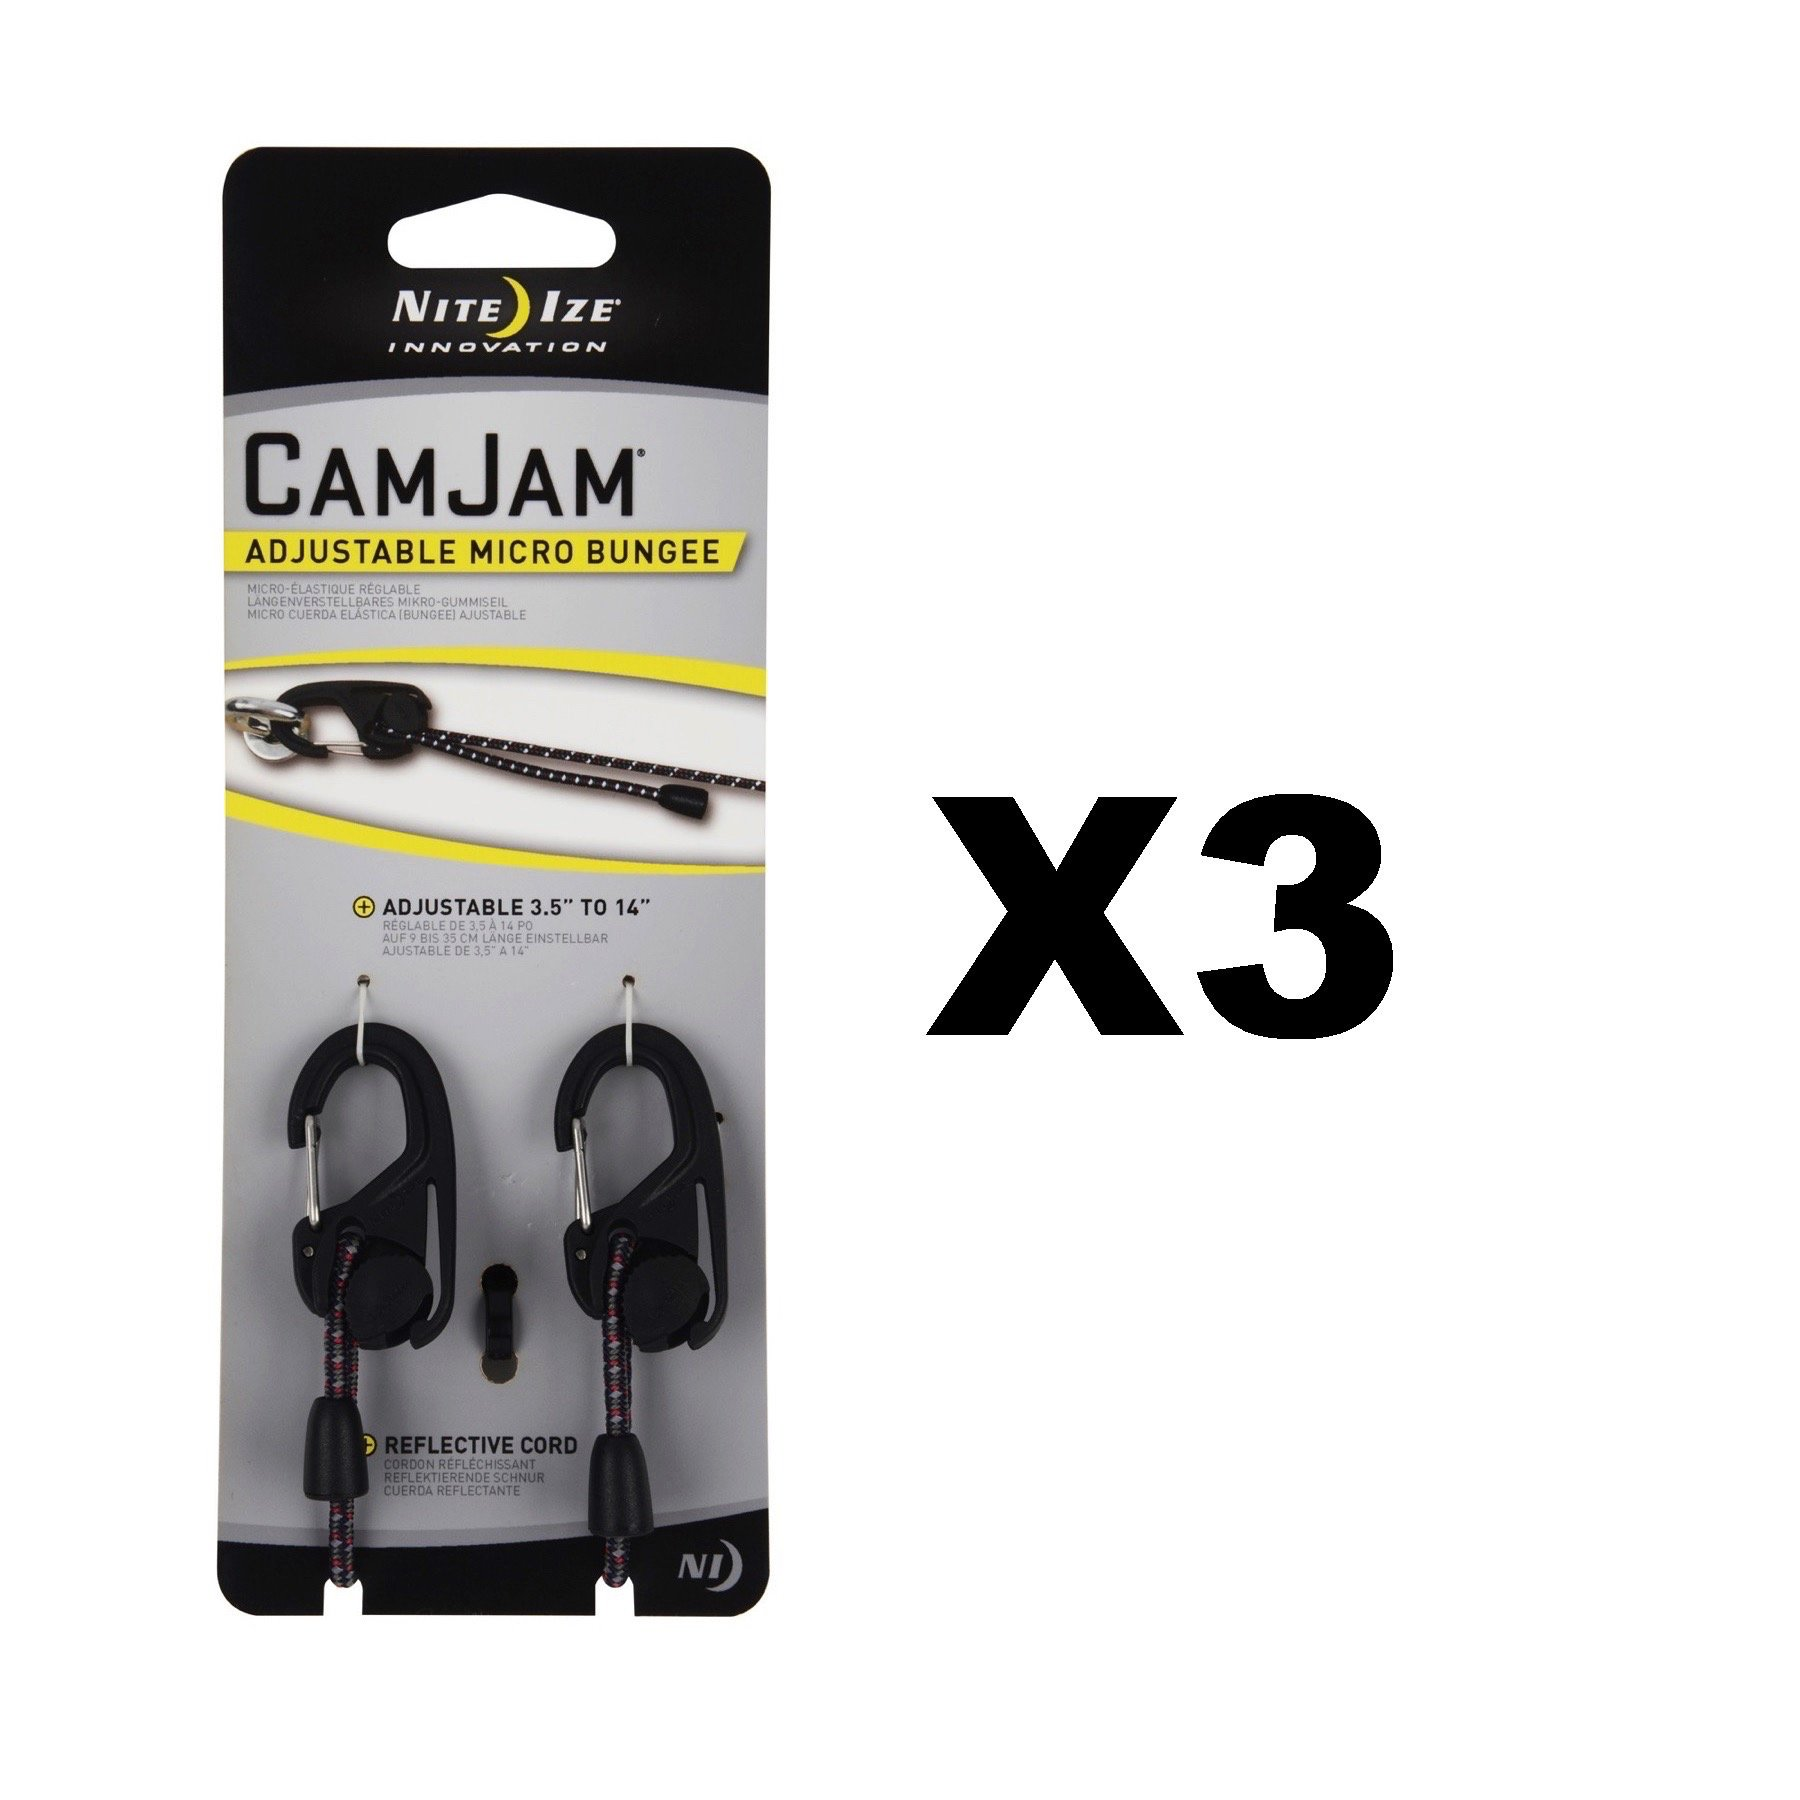 Nite Ize CamJam Adjustable Micro Bungee Cord 3.5''-14'' w/Biner Clips (3-Pack)